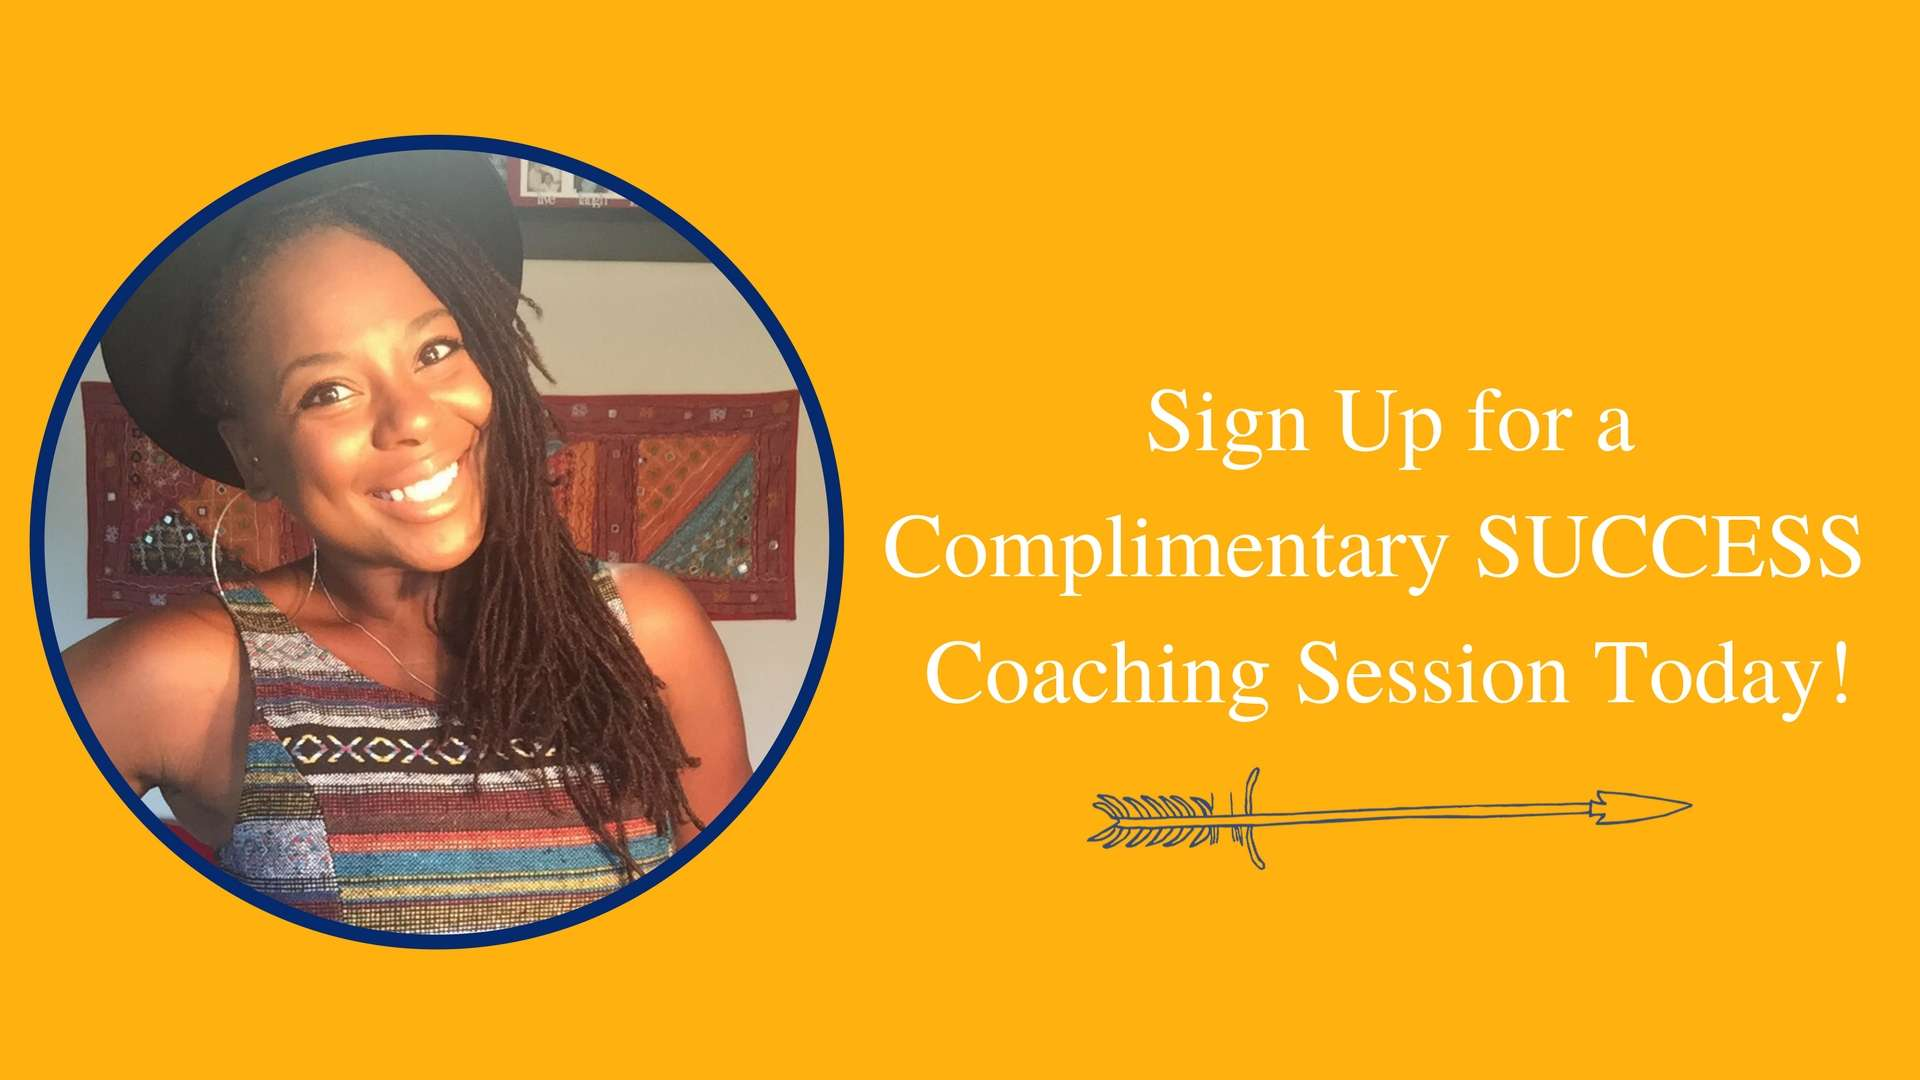 Sign Up for a Complimentary SUCCESS Coaching Session Today!